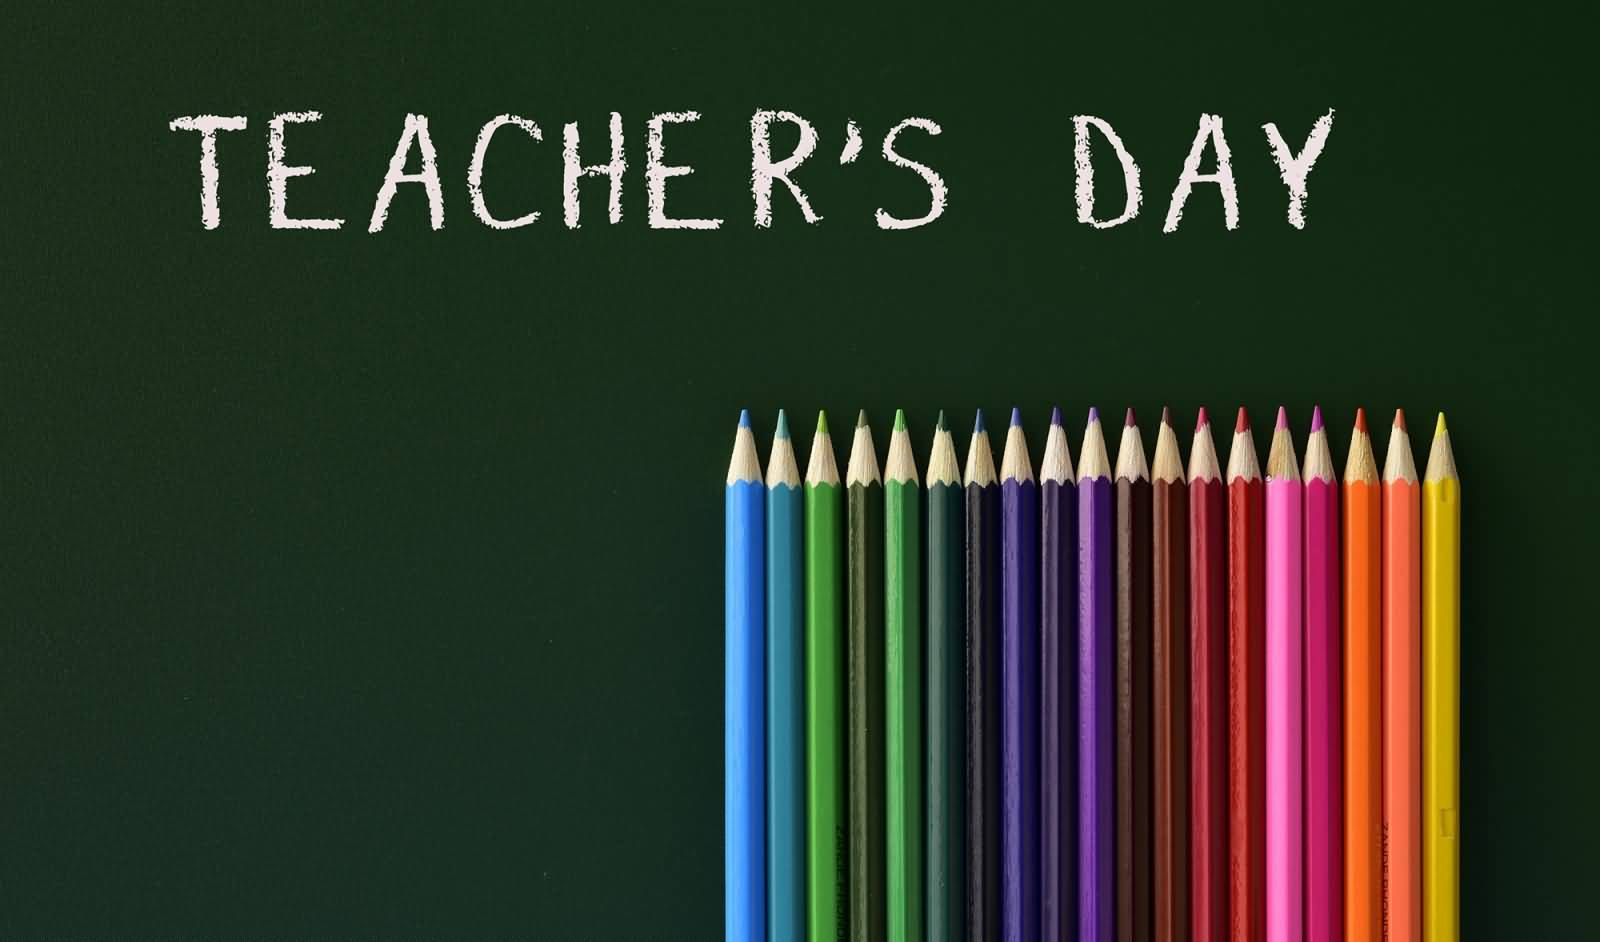 Happy world teachers day greetings to best sir image picsmine happy world teachers day greetings to best sir image kristyandbryce Images